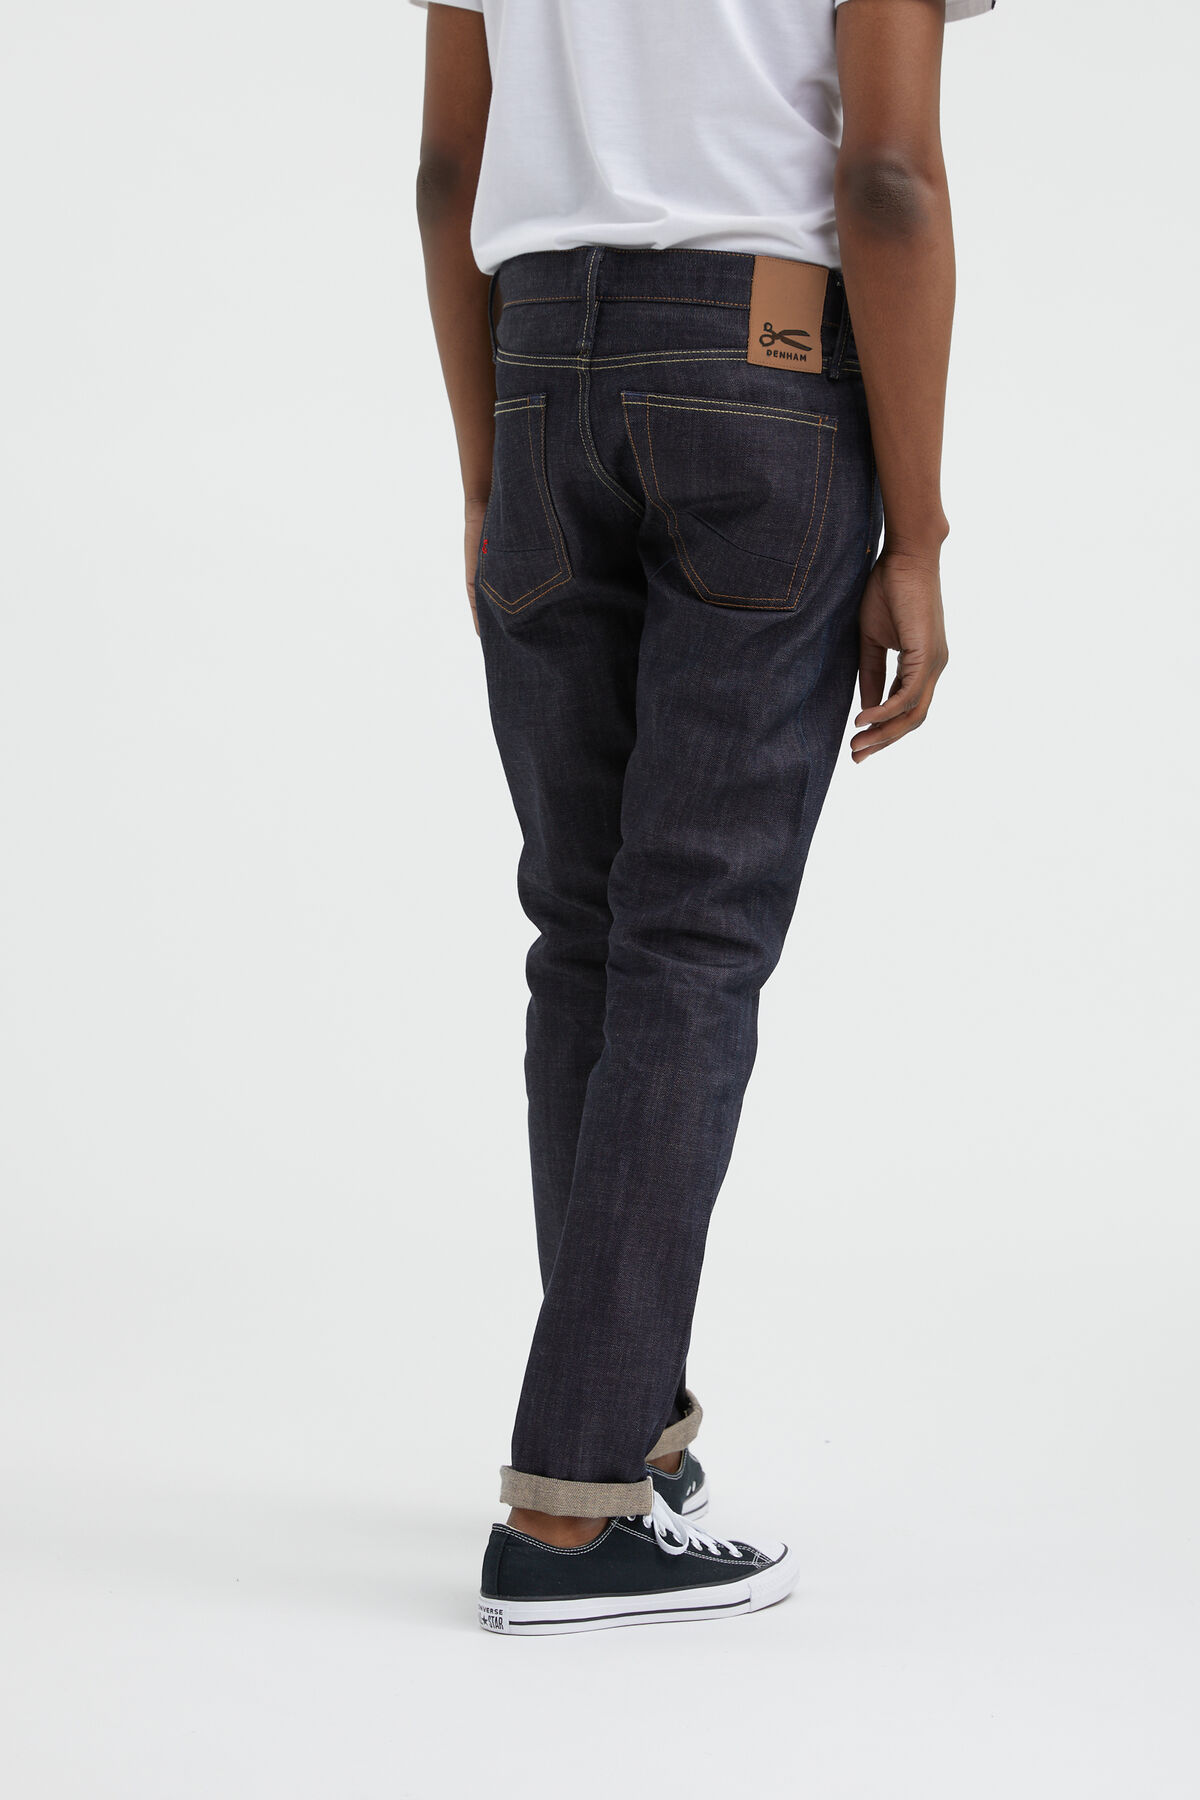 RAZOR SAKURA Unwashed Selvedge Denim - Slim Fit